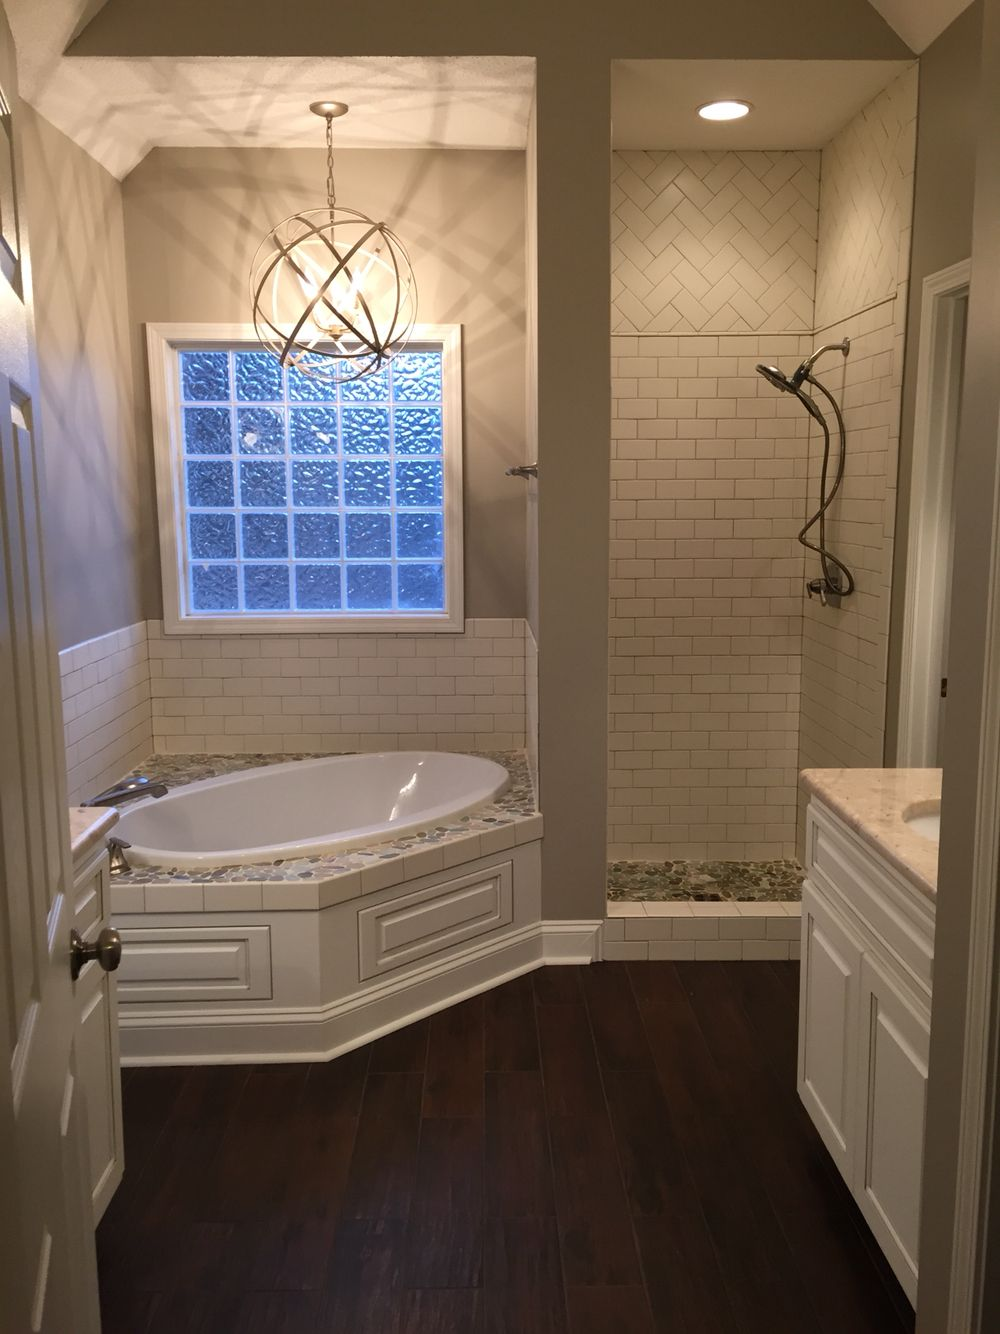 30+ Facts Shower Room Ideas Everyone Thinks Are True   Pinterest ...